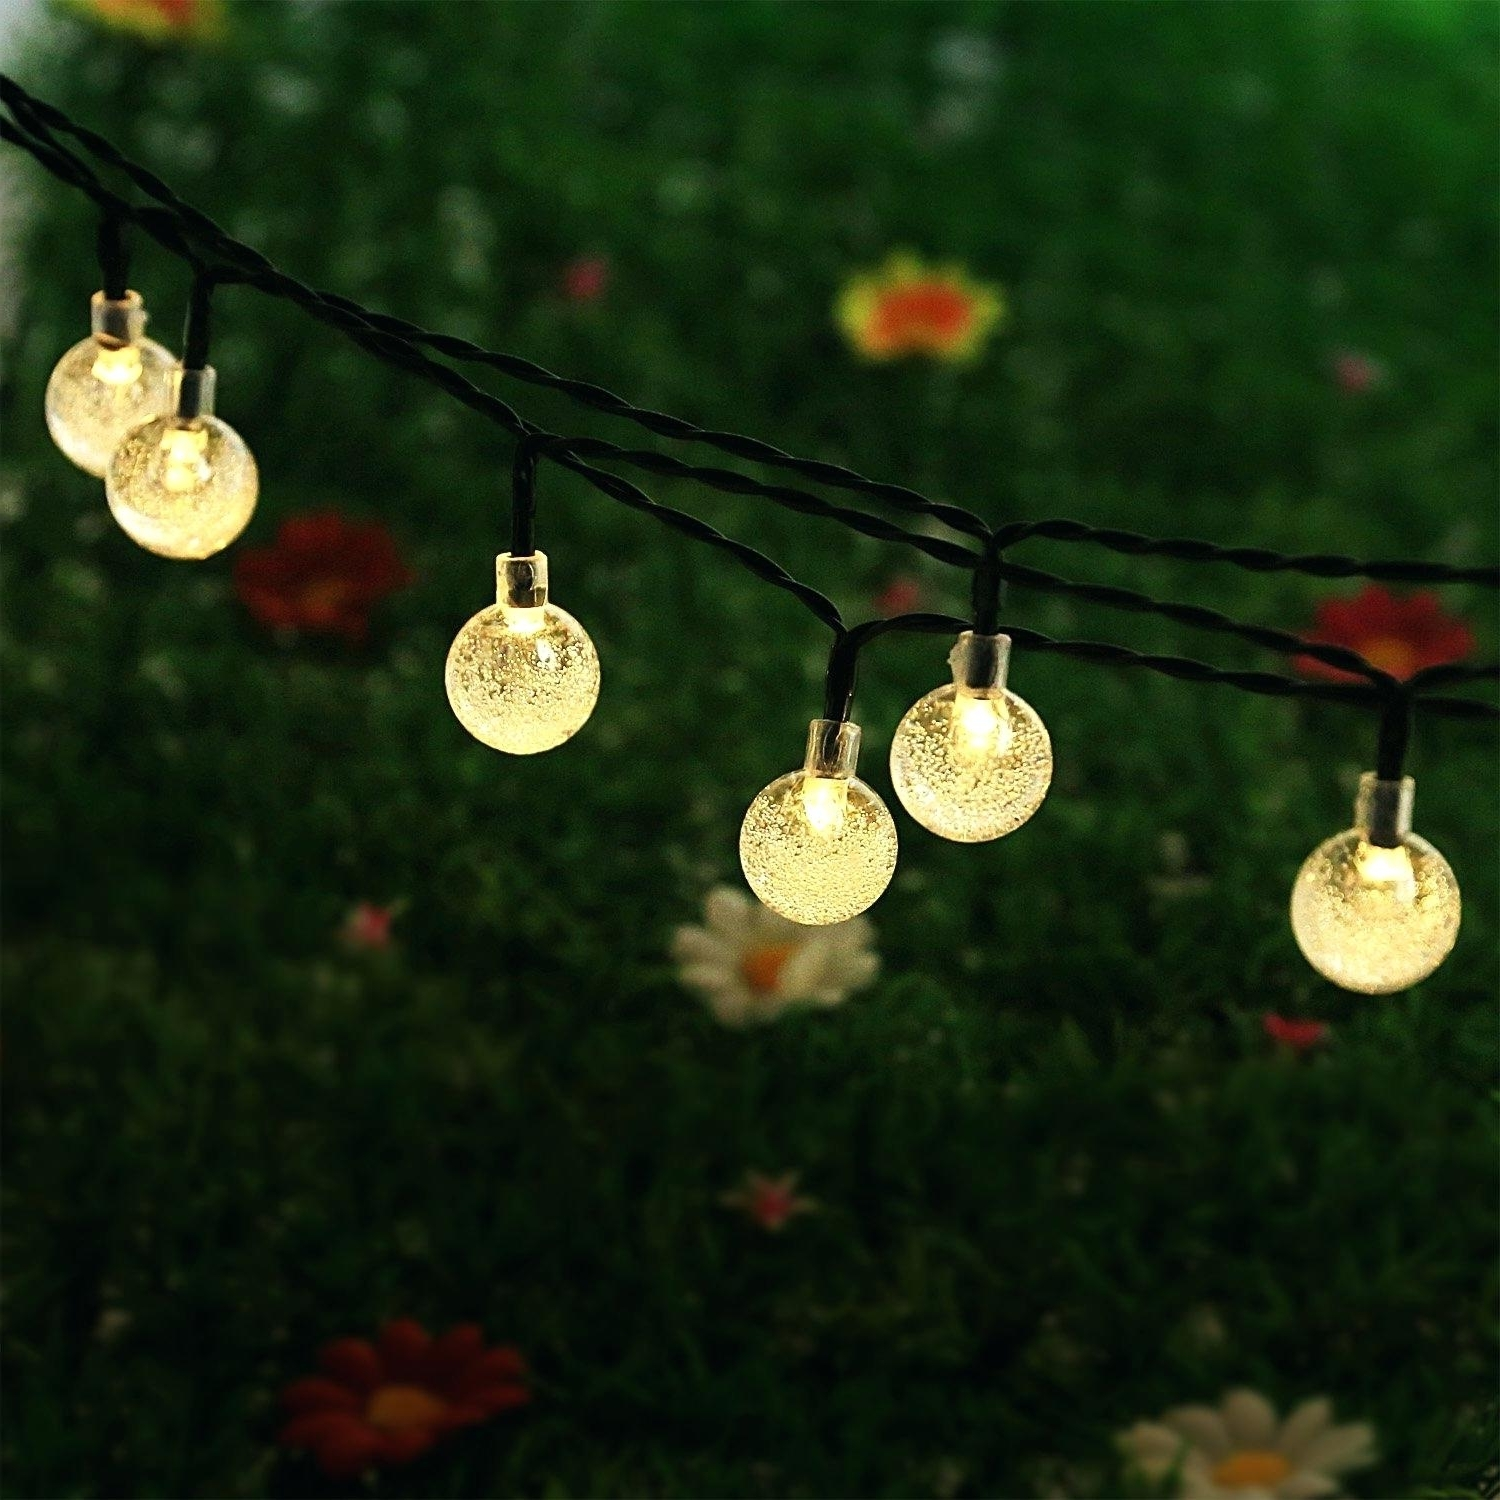 Favorite Outdoor Hanging Low Voltage Lights With Regard To Low Voltage Hanging String Lights — Lustwithalaugh Design : Limit An (View 3 of 20)